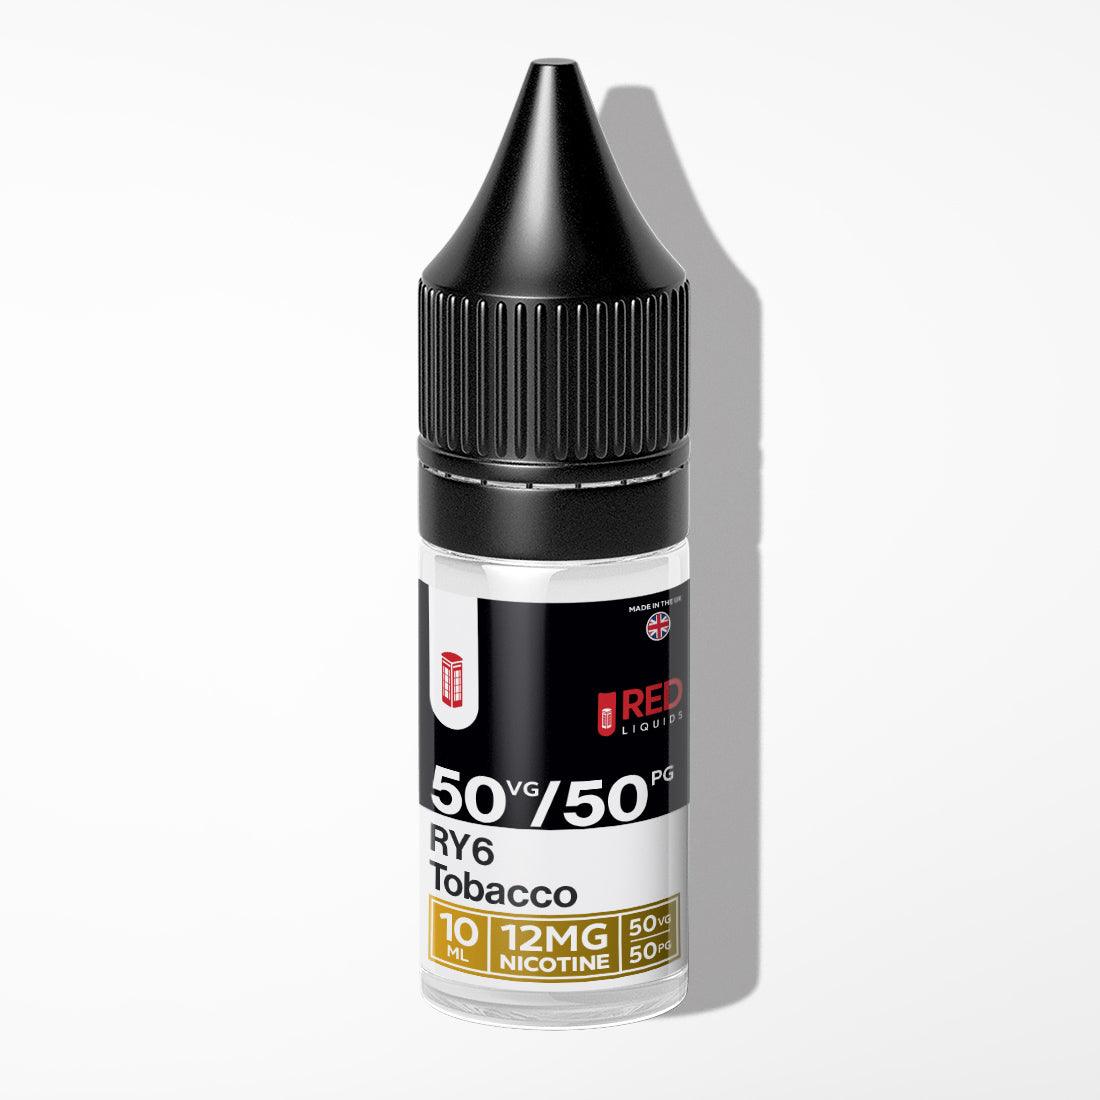 RED Liquids - RY6 Tobacco